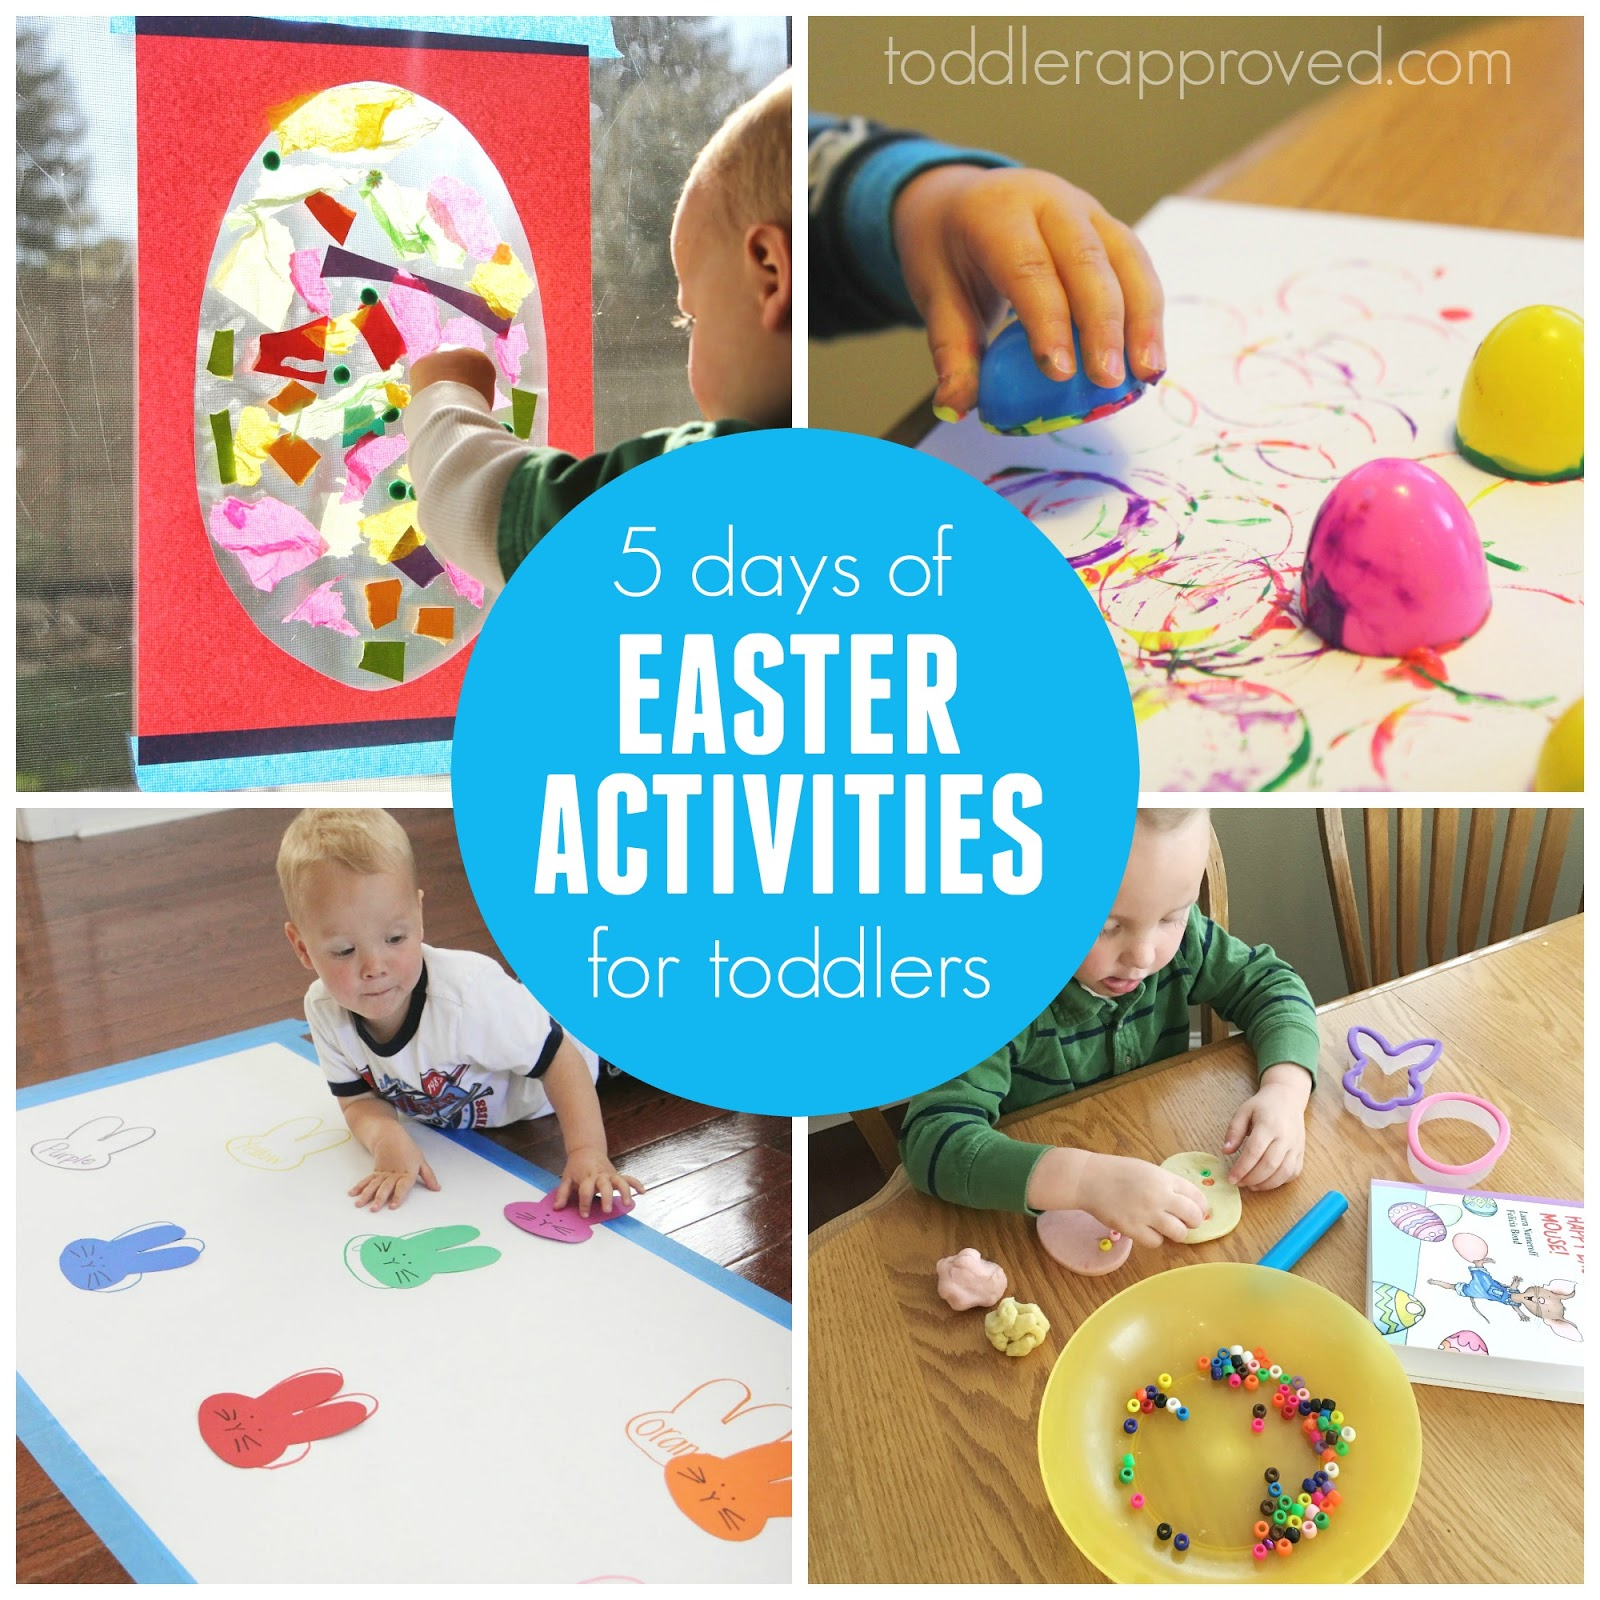 Toddler Approved 5 Days Of Toddler Easter Activities